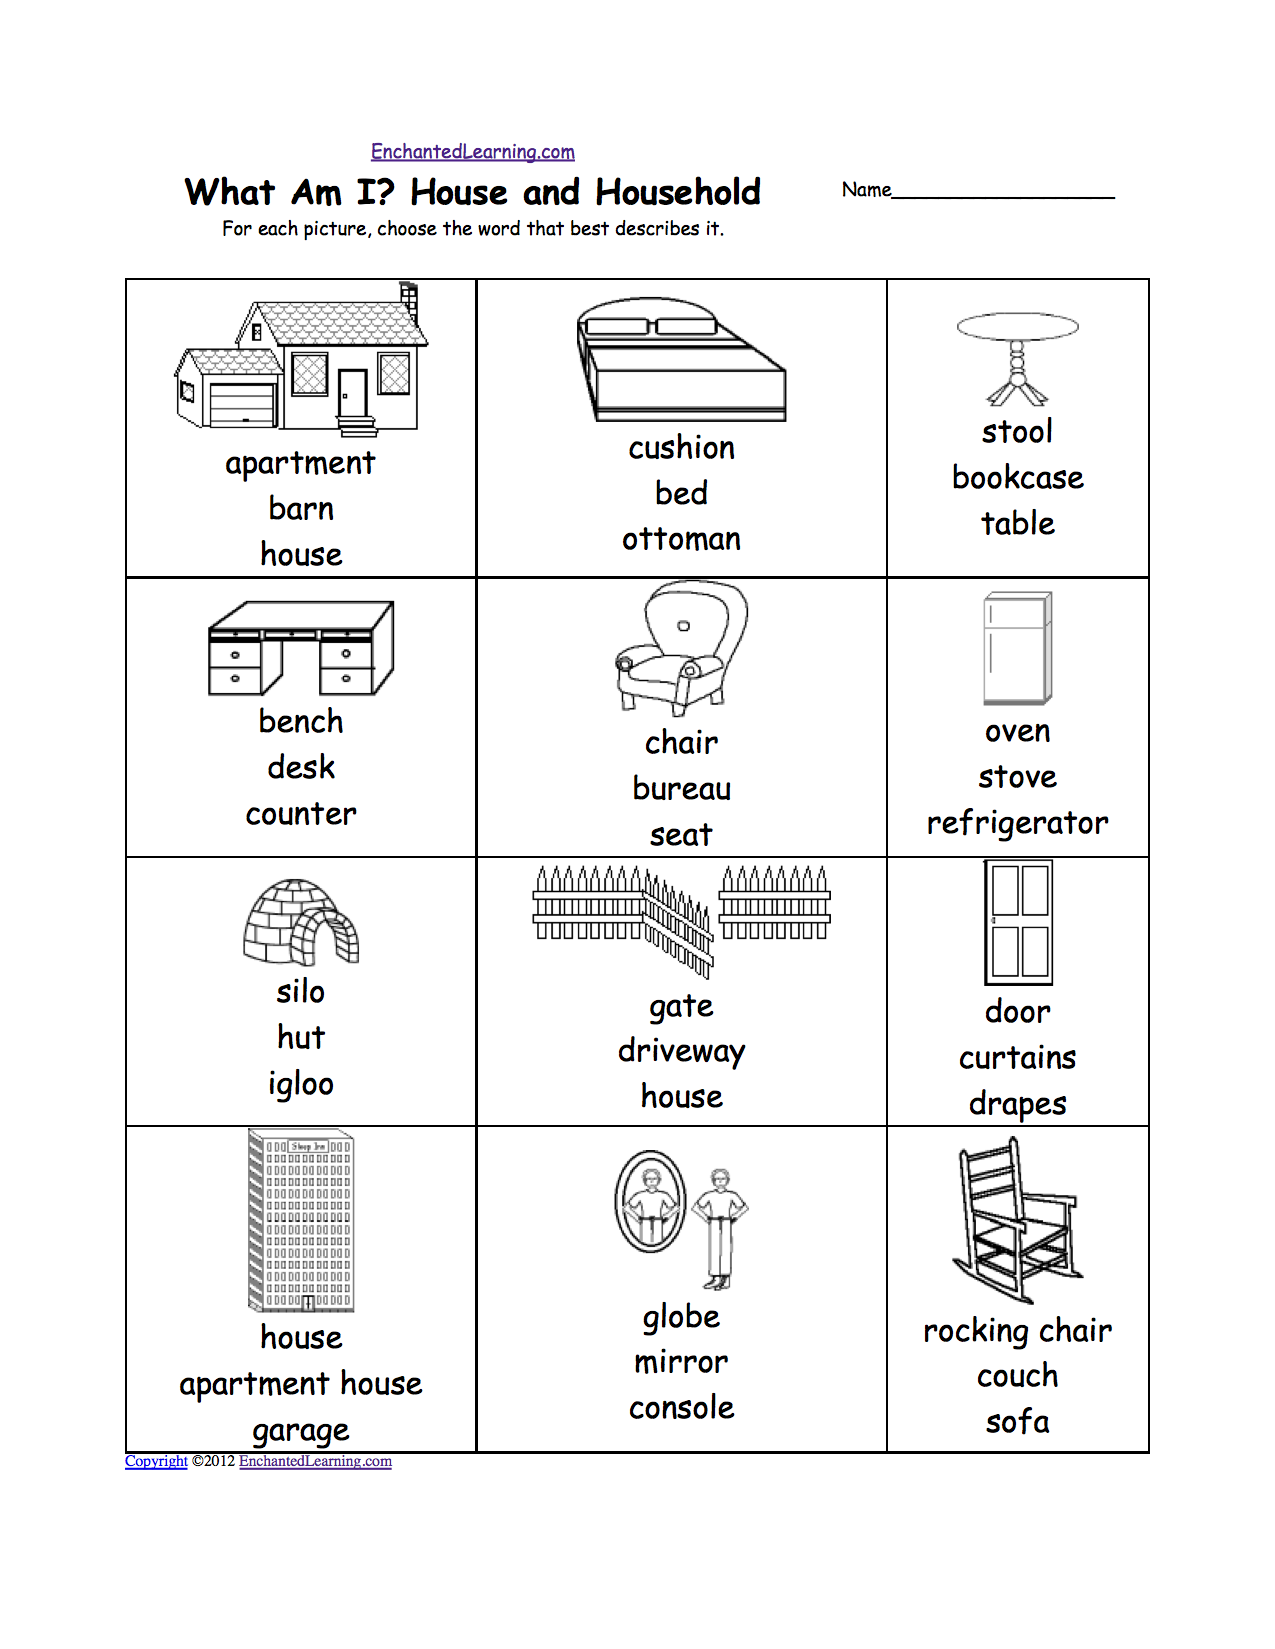 worksheet Computer Parts Worksheet homes and other dwellings at enchantedlearning com